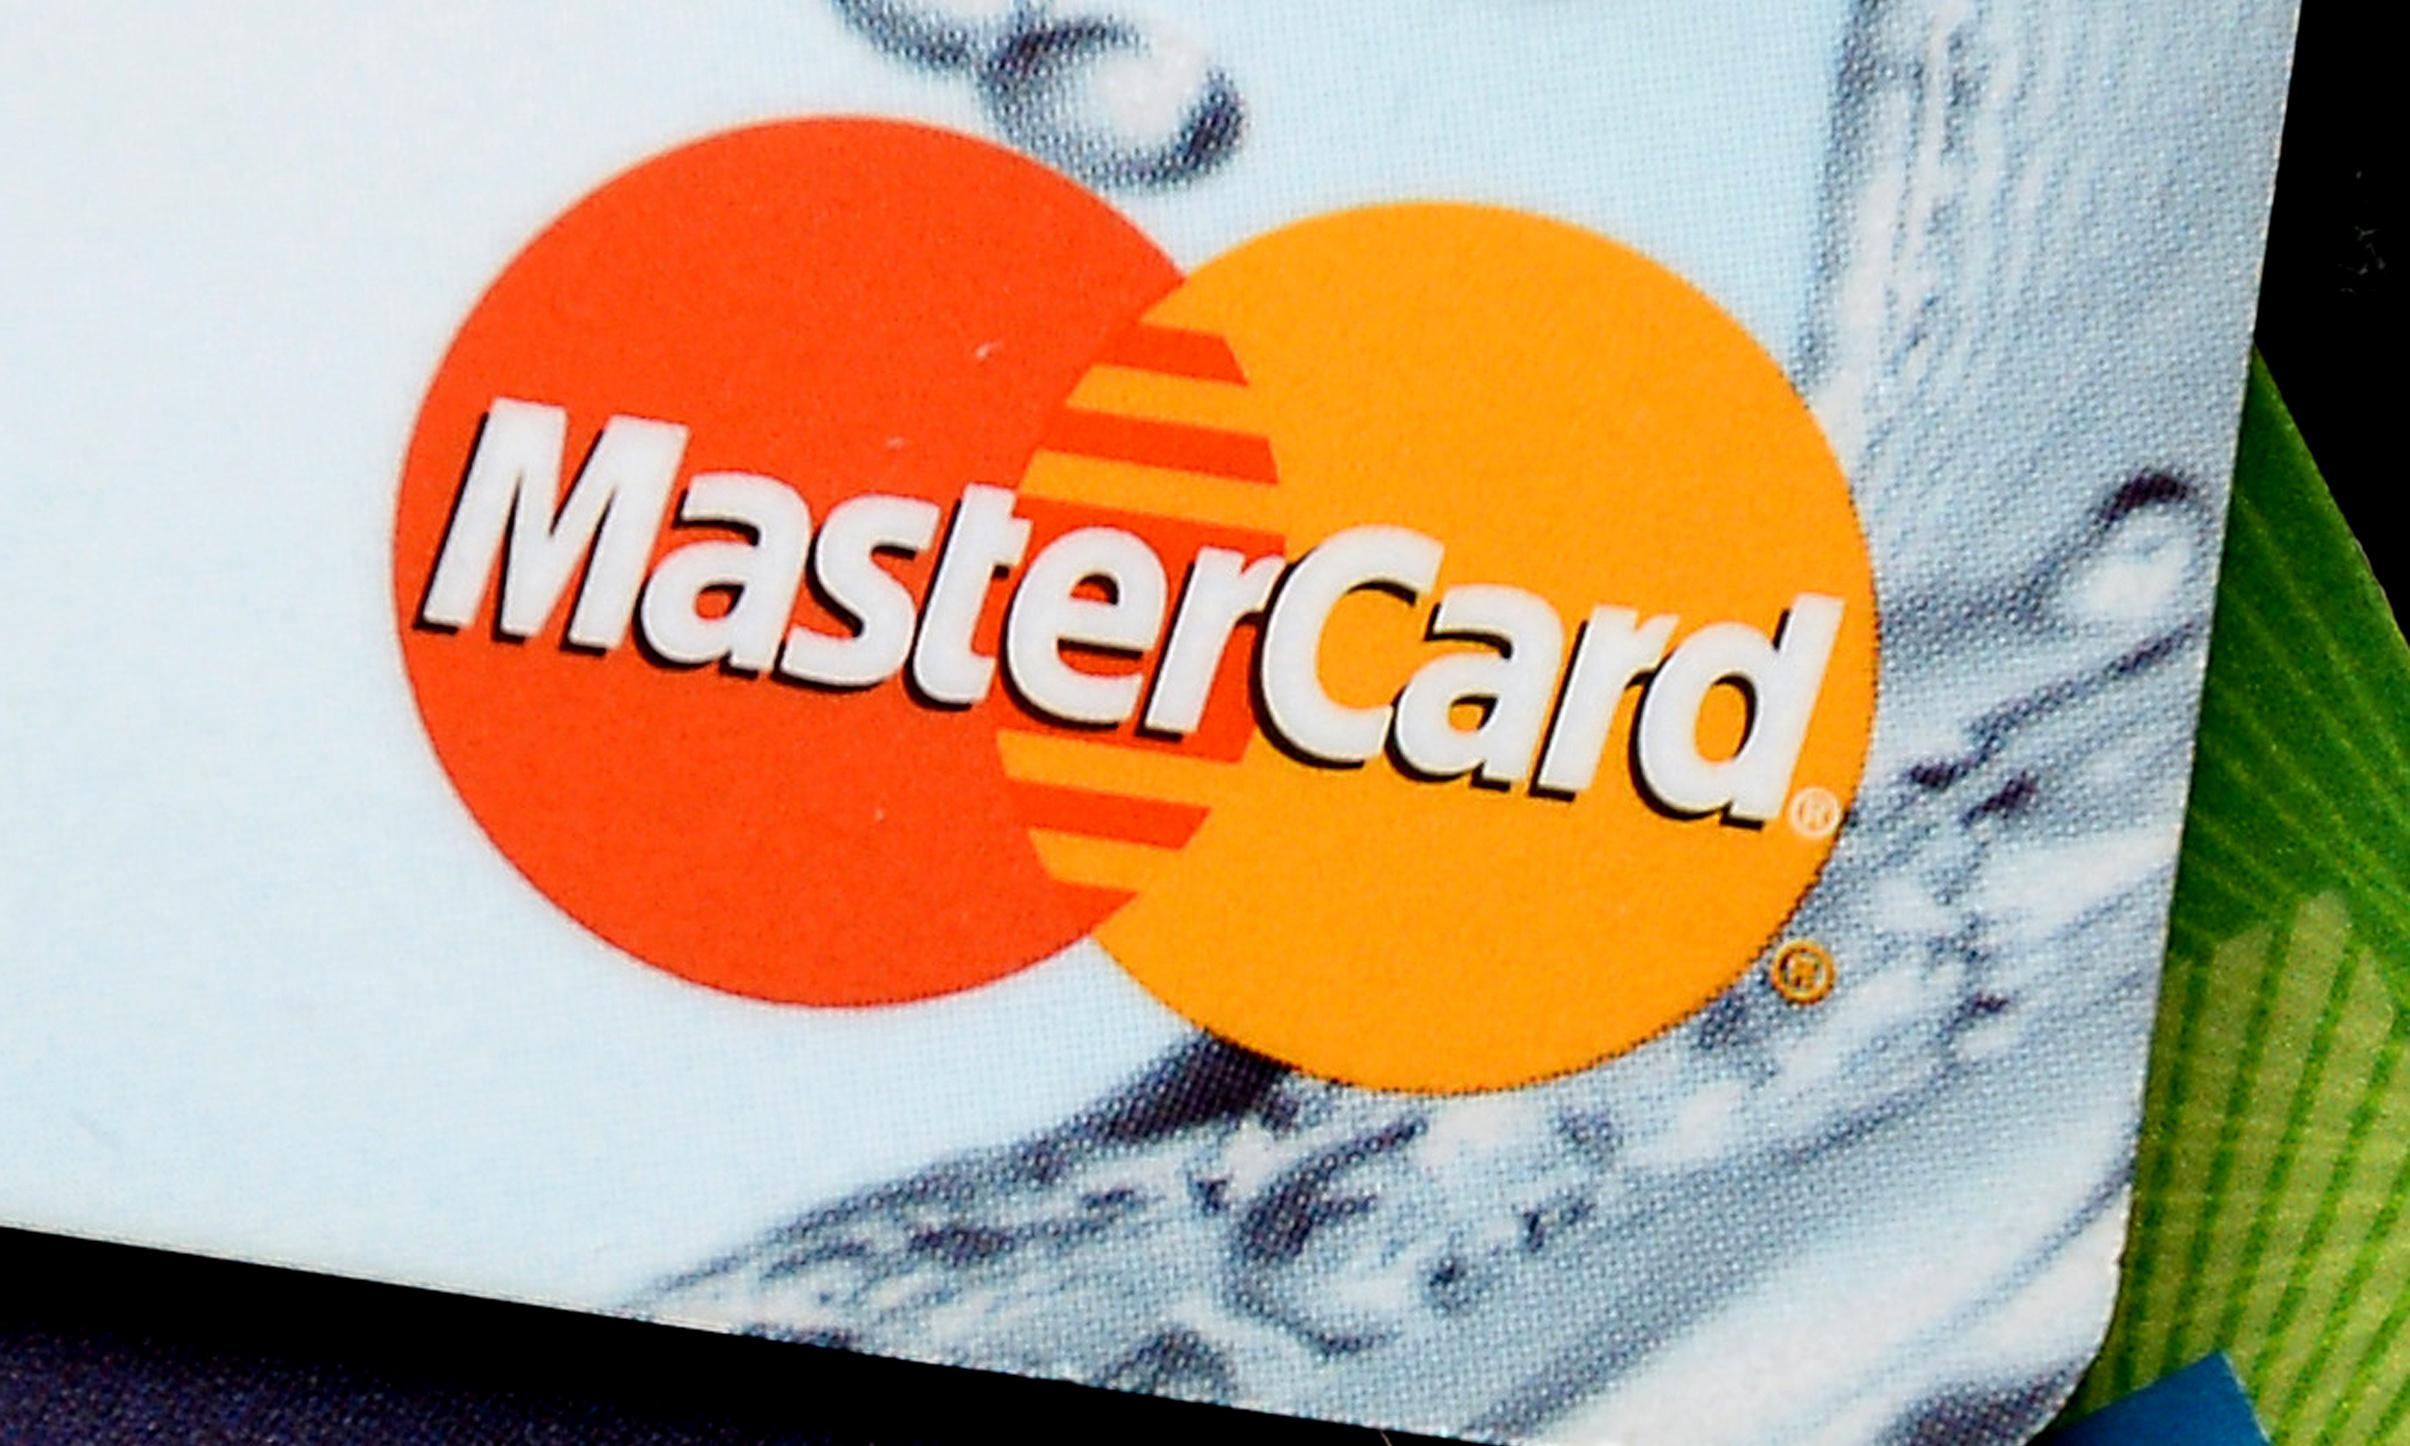 Mastercard ruling: almost every UK adult could receive payout